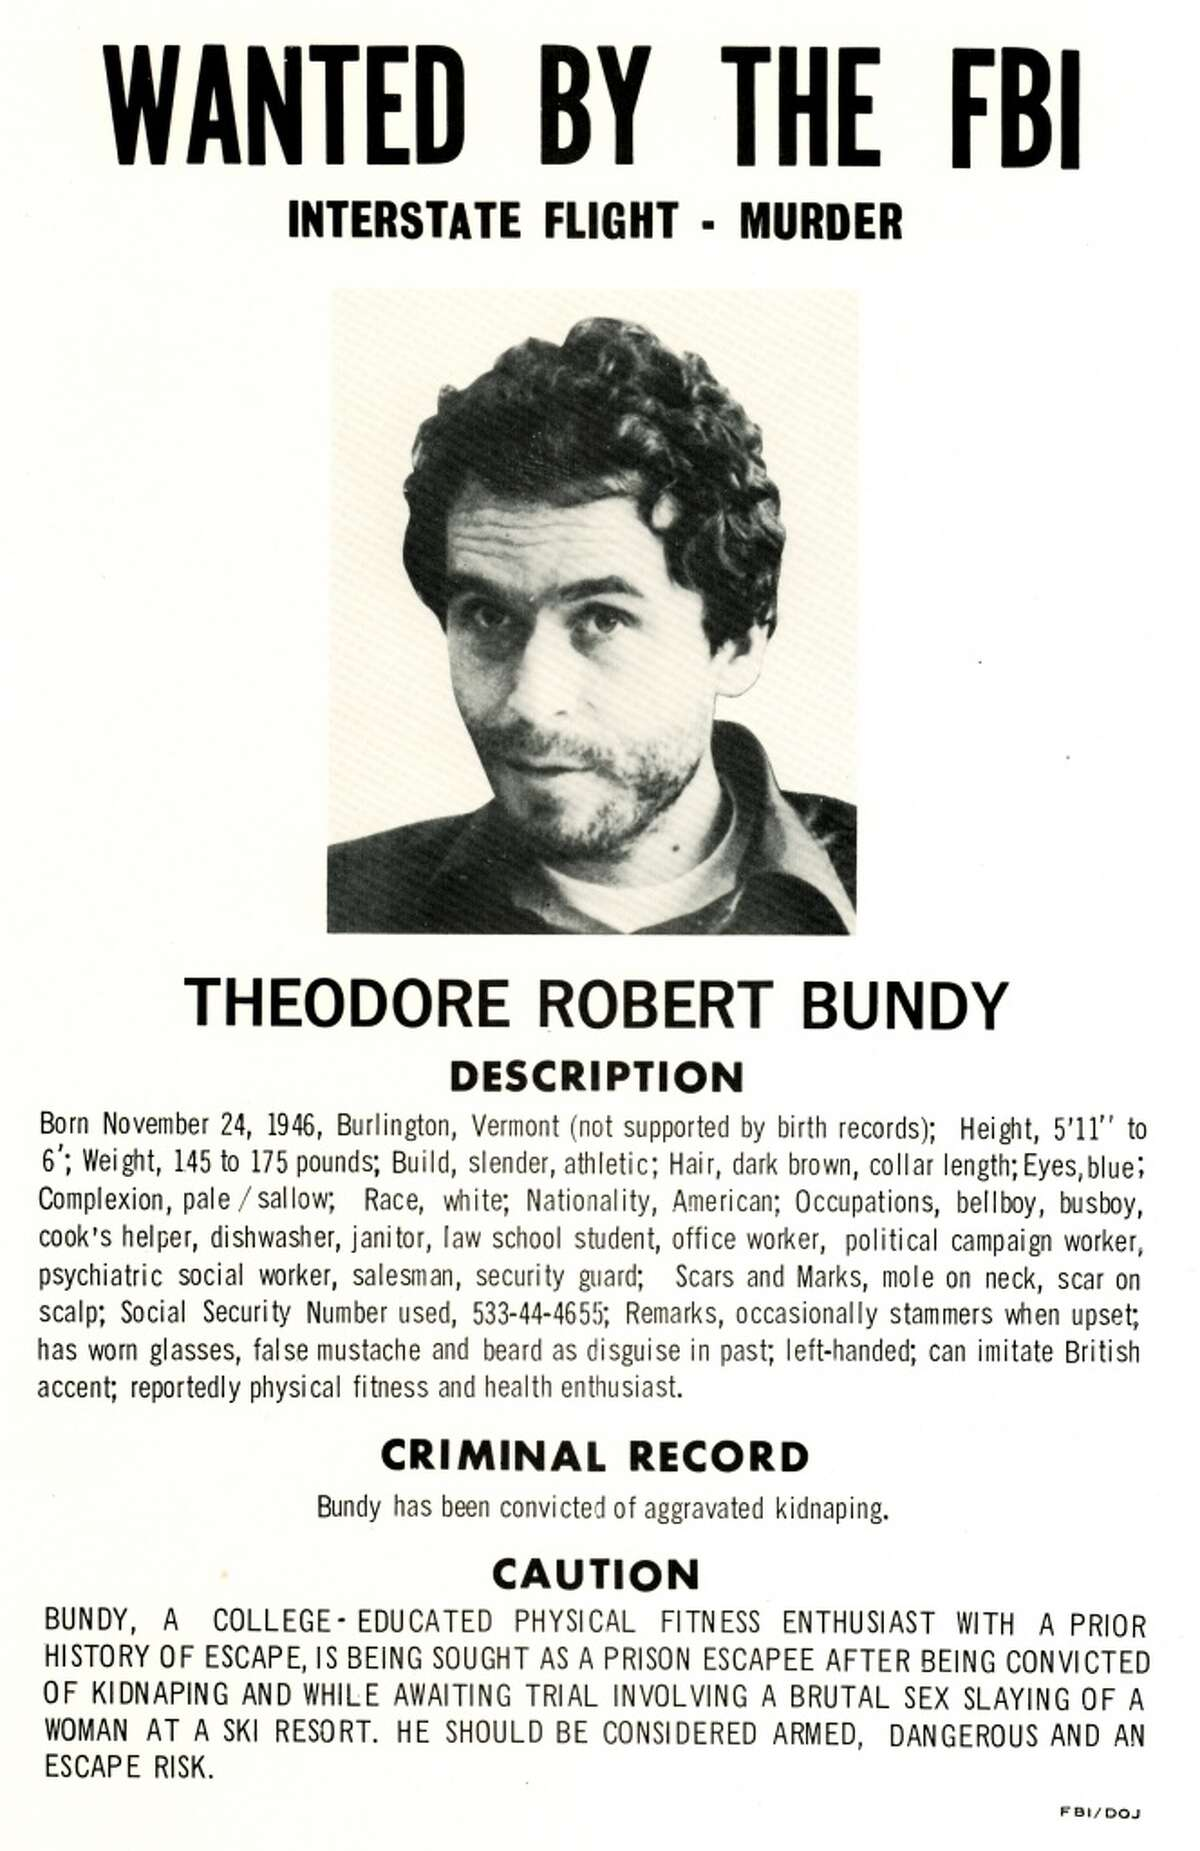 Ted Bundy, class of '72, may already have begun murdering young women while he attended psychology classes at UW. After his final capture in 1978, he later admitted to 30 killings, though inconsistent accounts by him in interviews suggest he may have killed many more. He was executed in 1989.